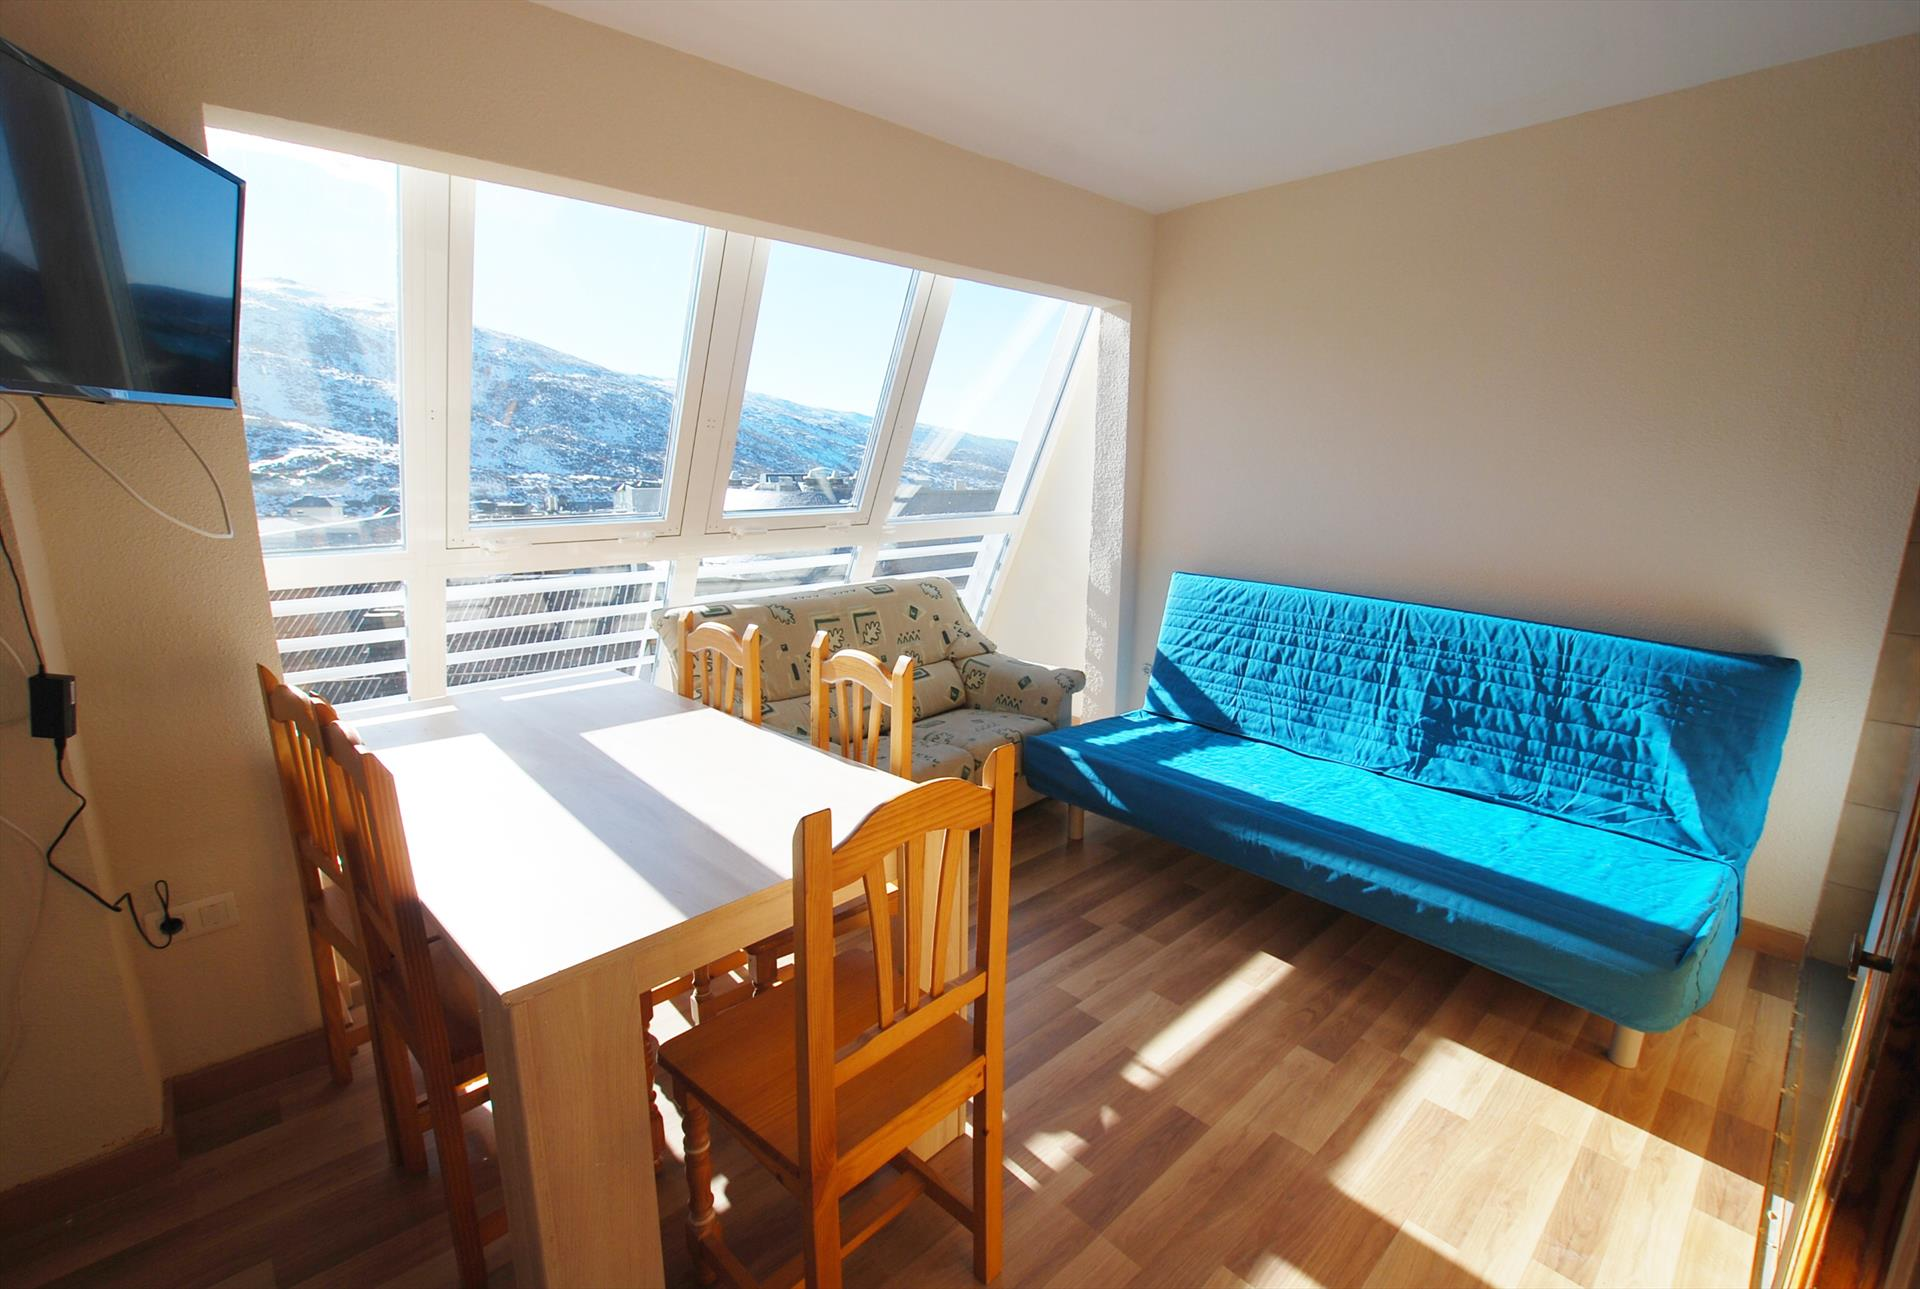 Apartamento montblanc 600, Apartment in Sierra Nevada, Sierra Nevada, Spain for 6 persons...